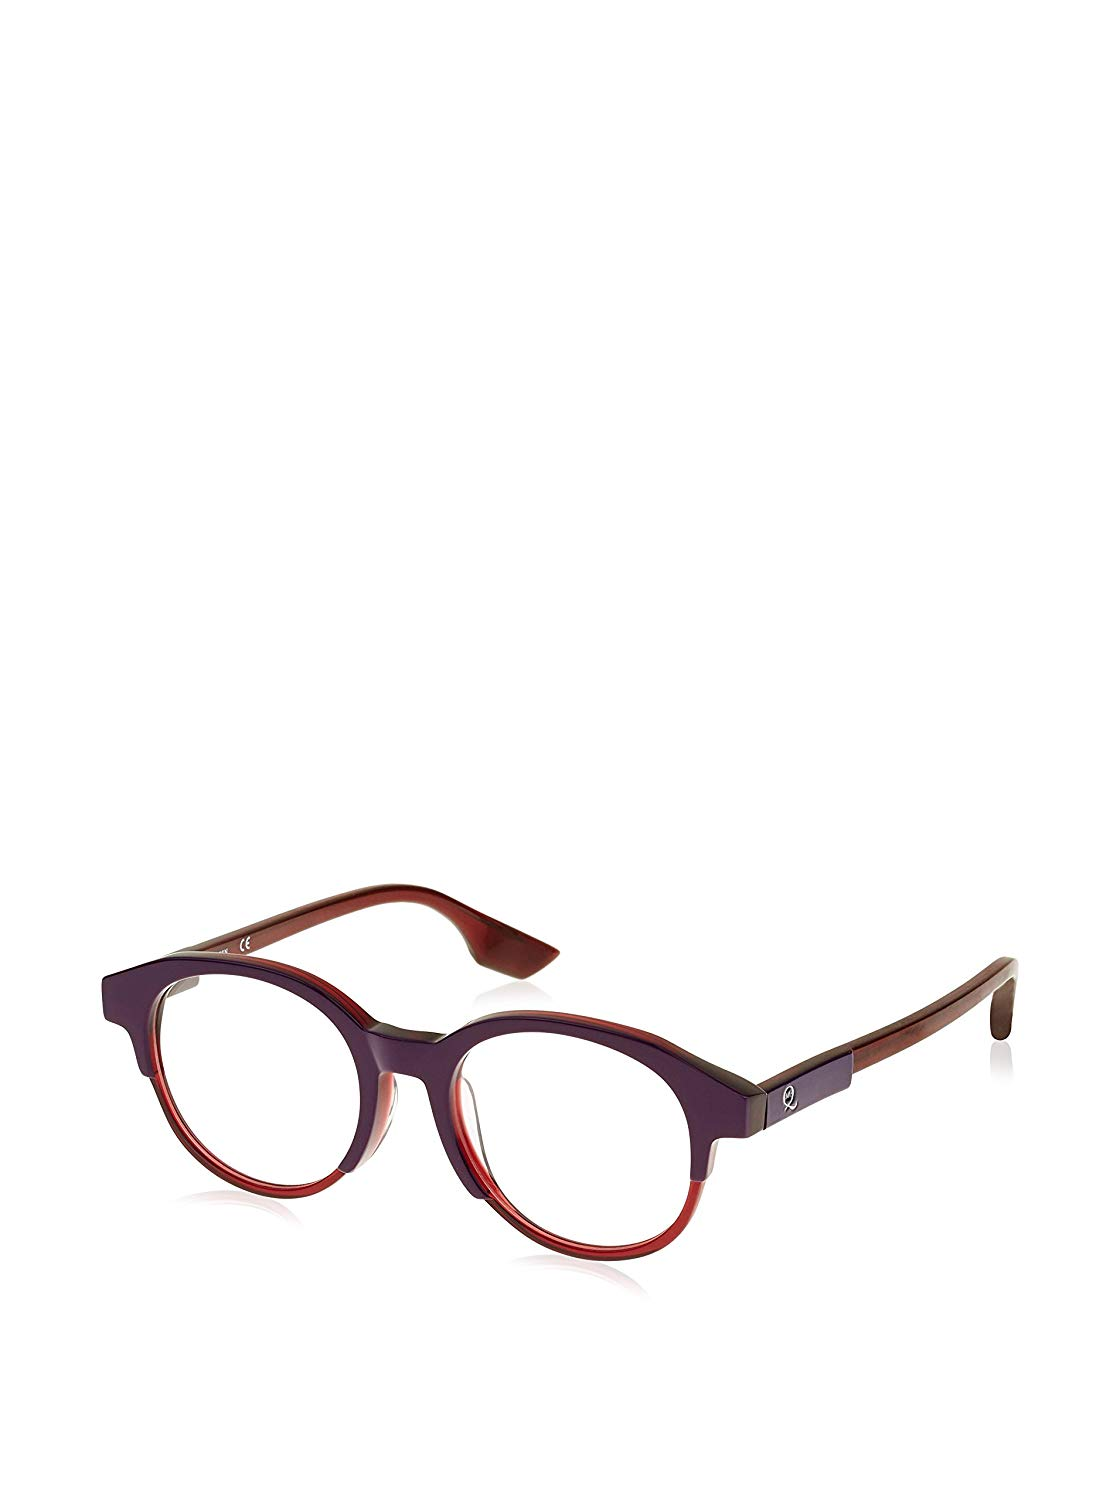 0be3ab99894 Buy DIOR 3221 Eyeglasses 0GCZ Burgundy Black 53-15-140 in Cheap ...